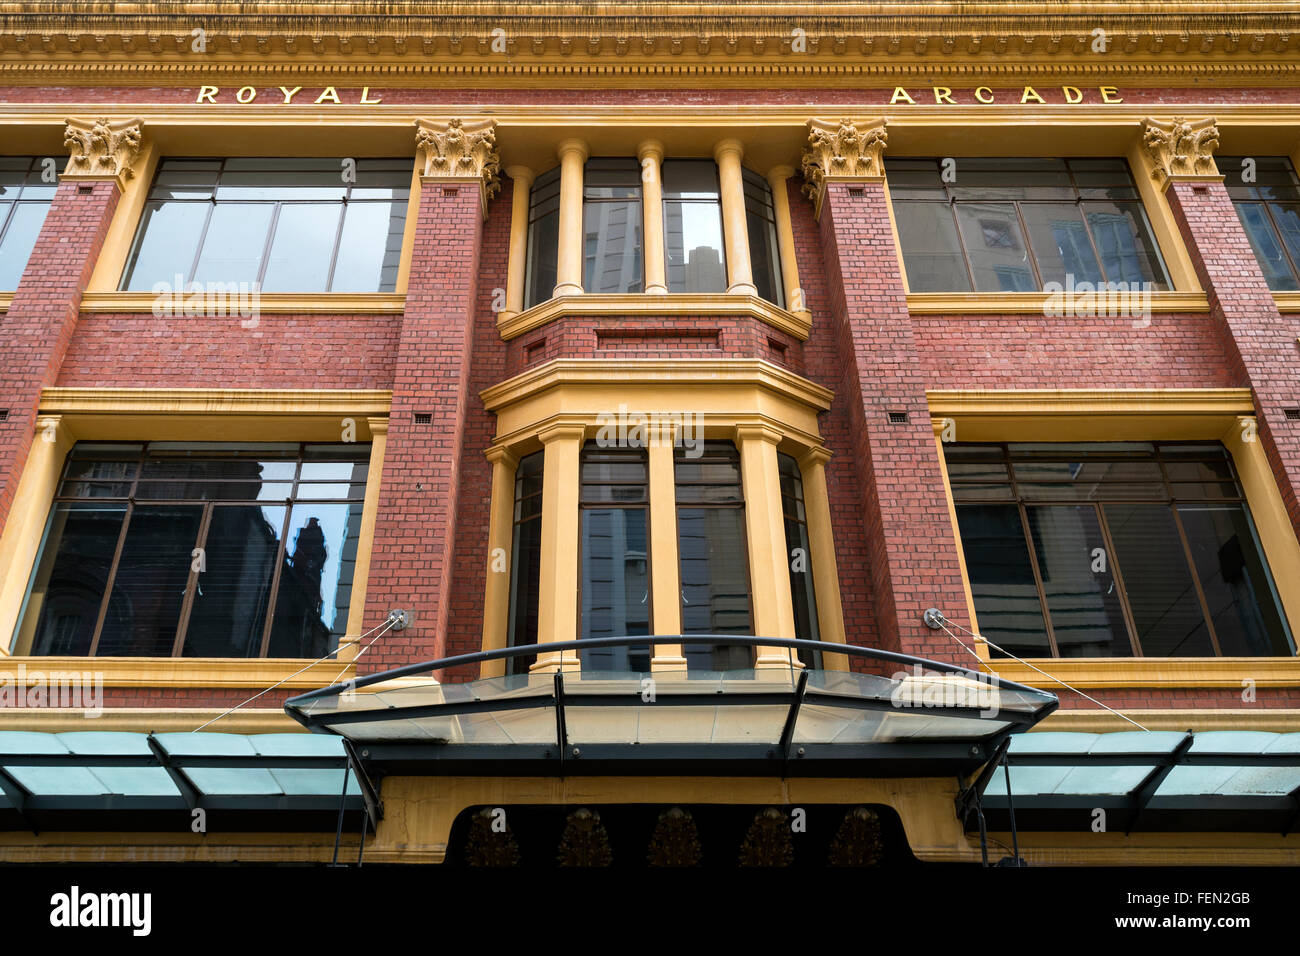 The Royal Arcade, Melbourne, Australia - Stock Image